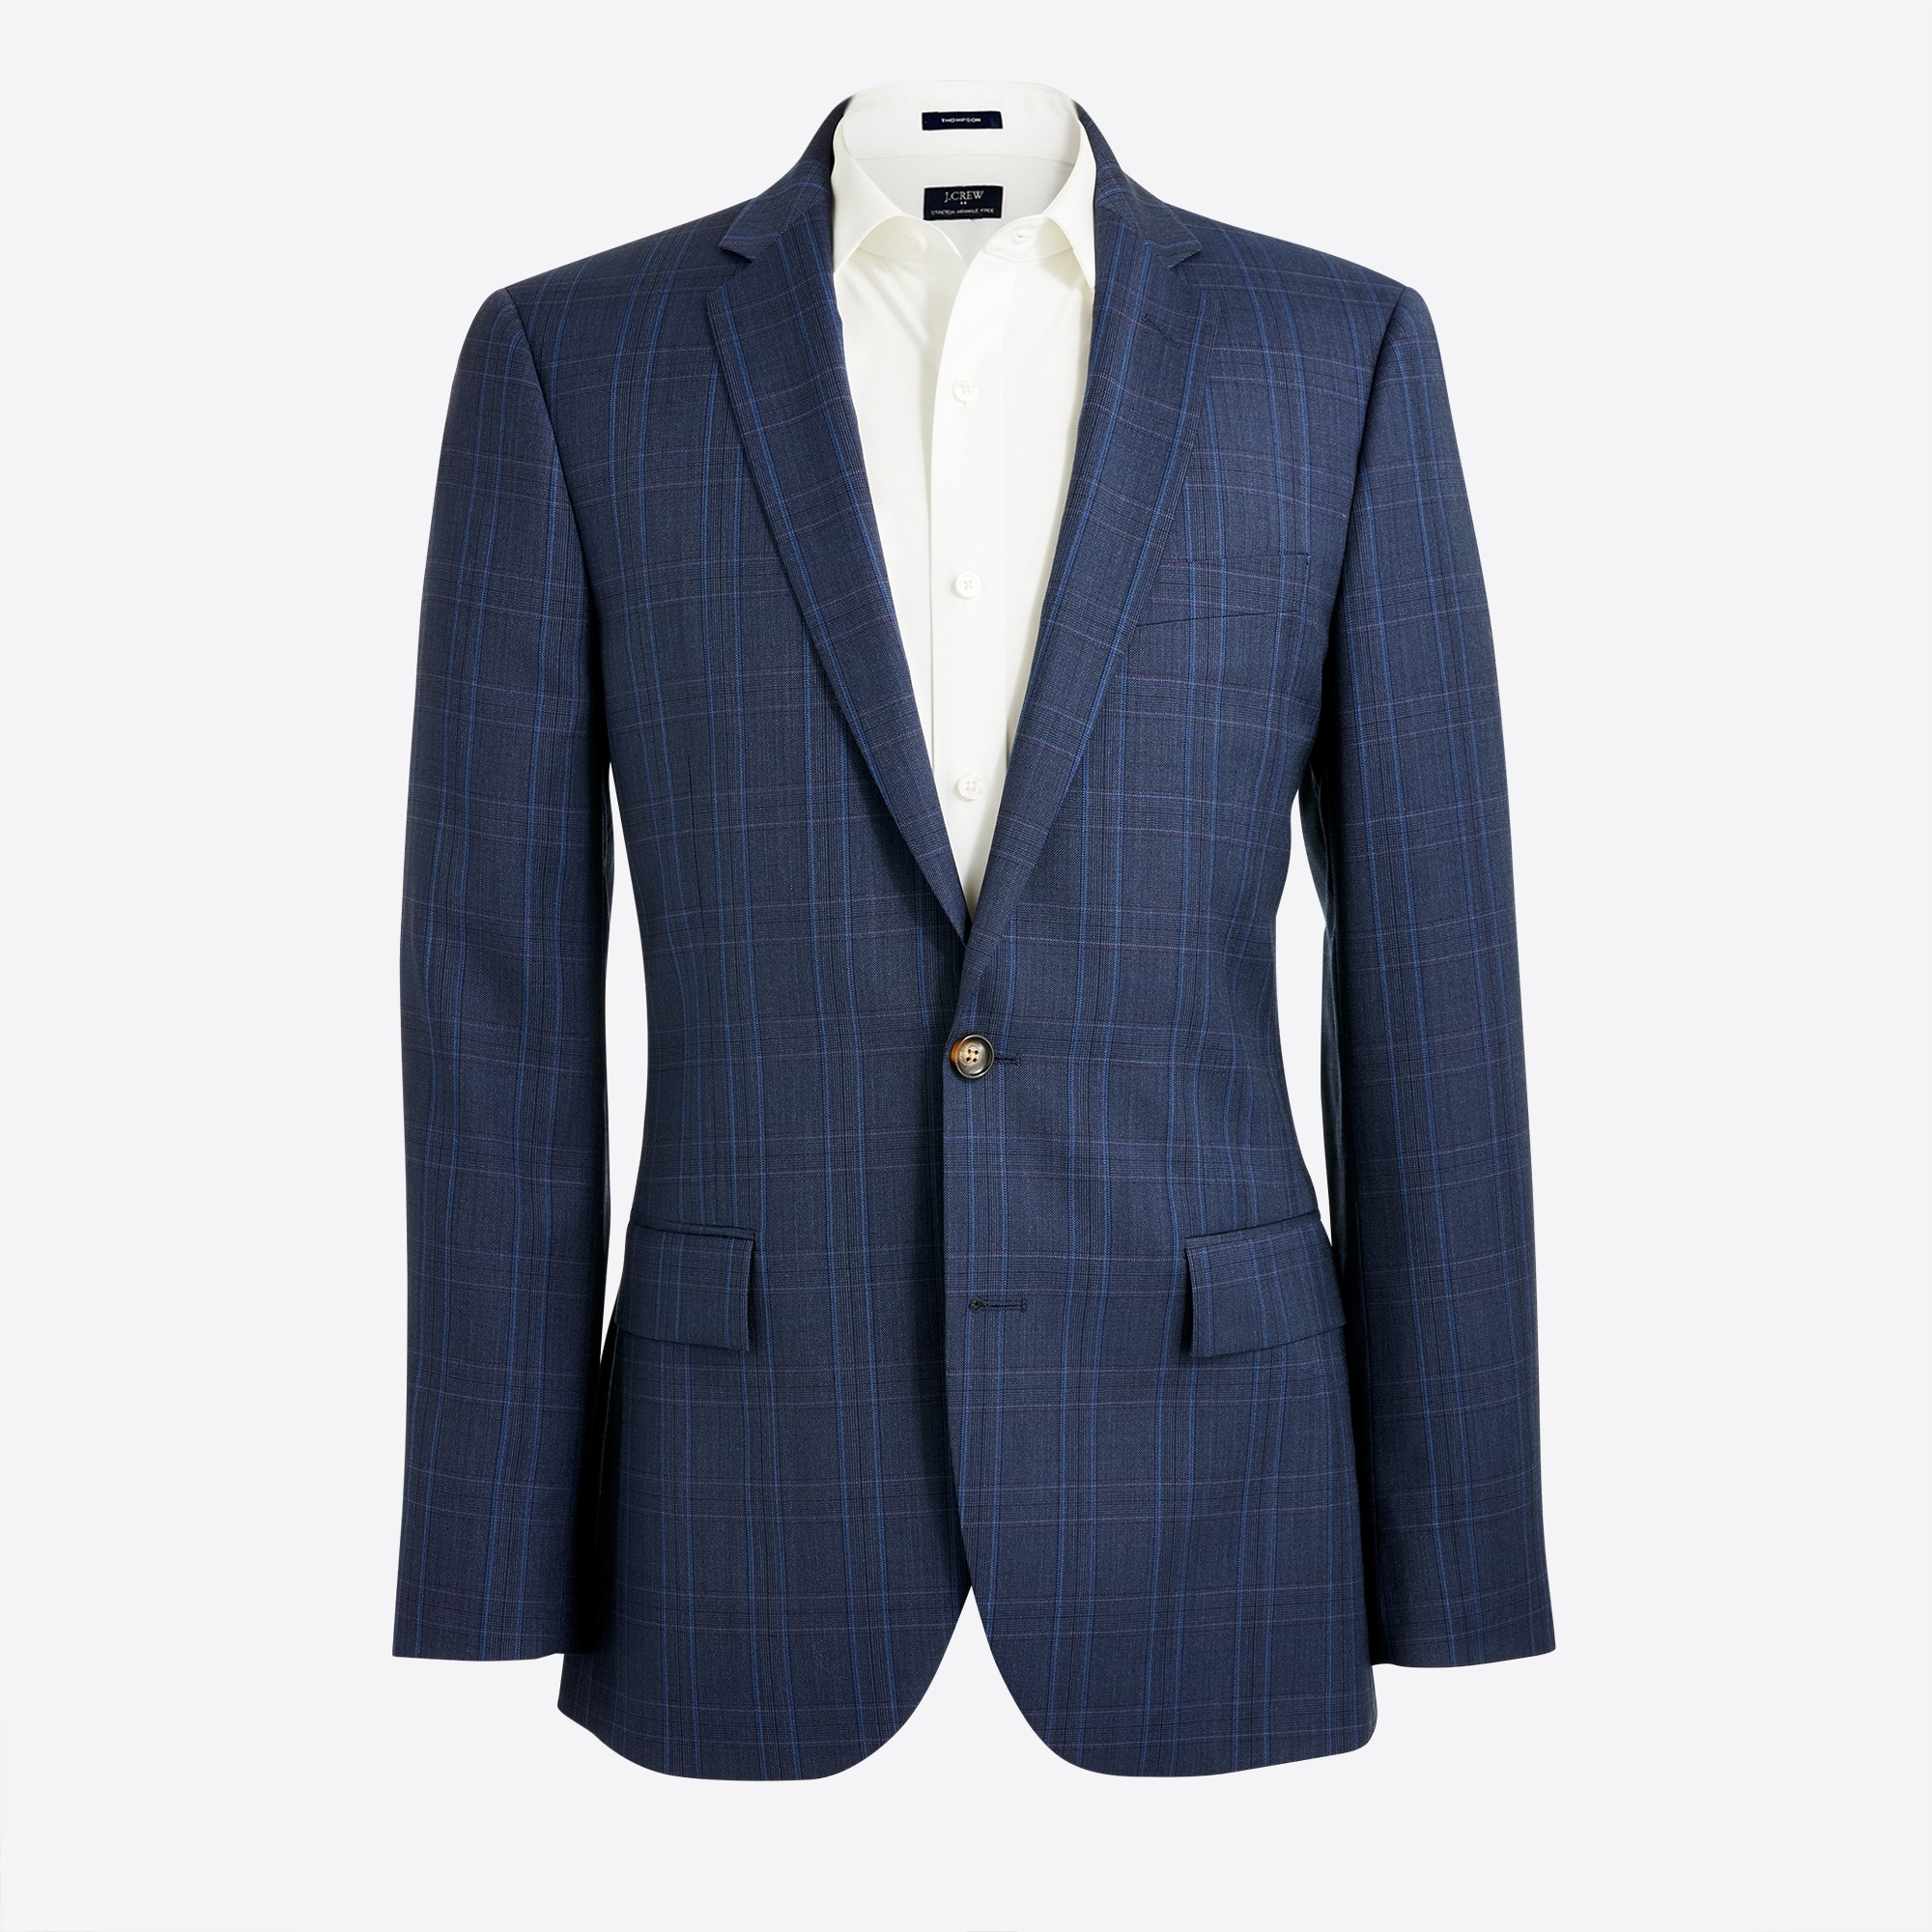 Thompson suit jacket in glen plaid worsted wool